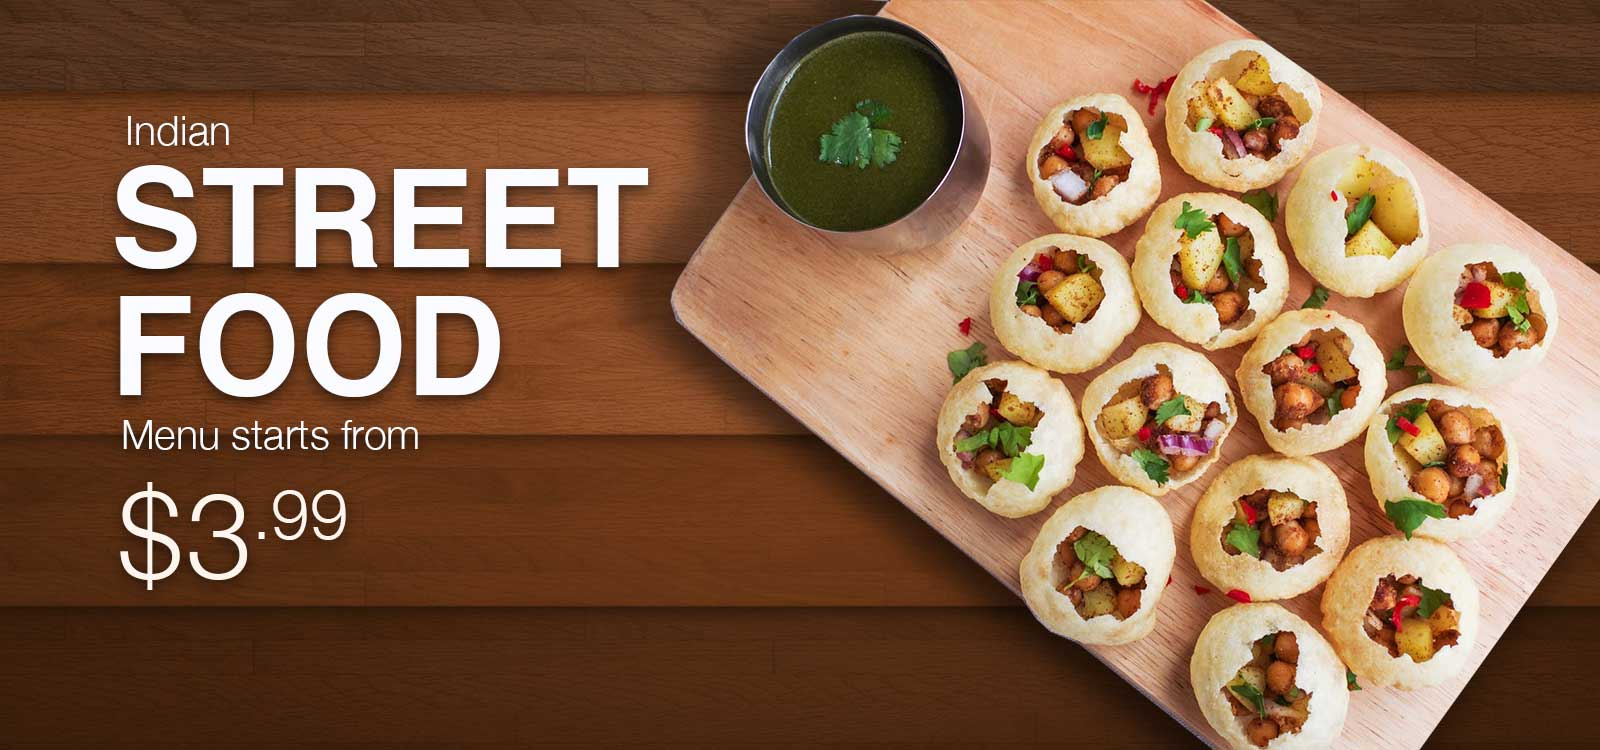 Veggie Planet Deal: Indian street food starting from $2.99